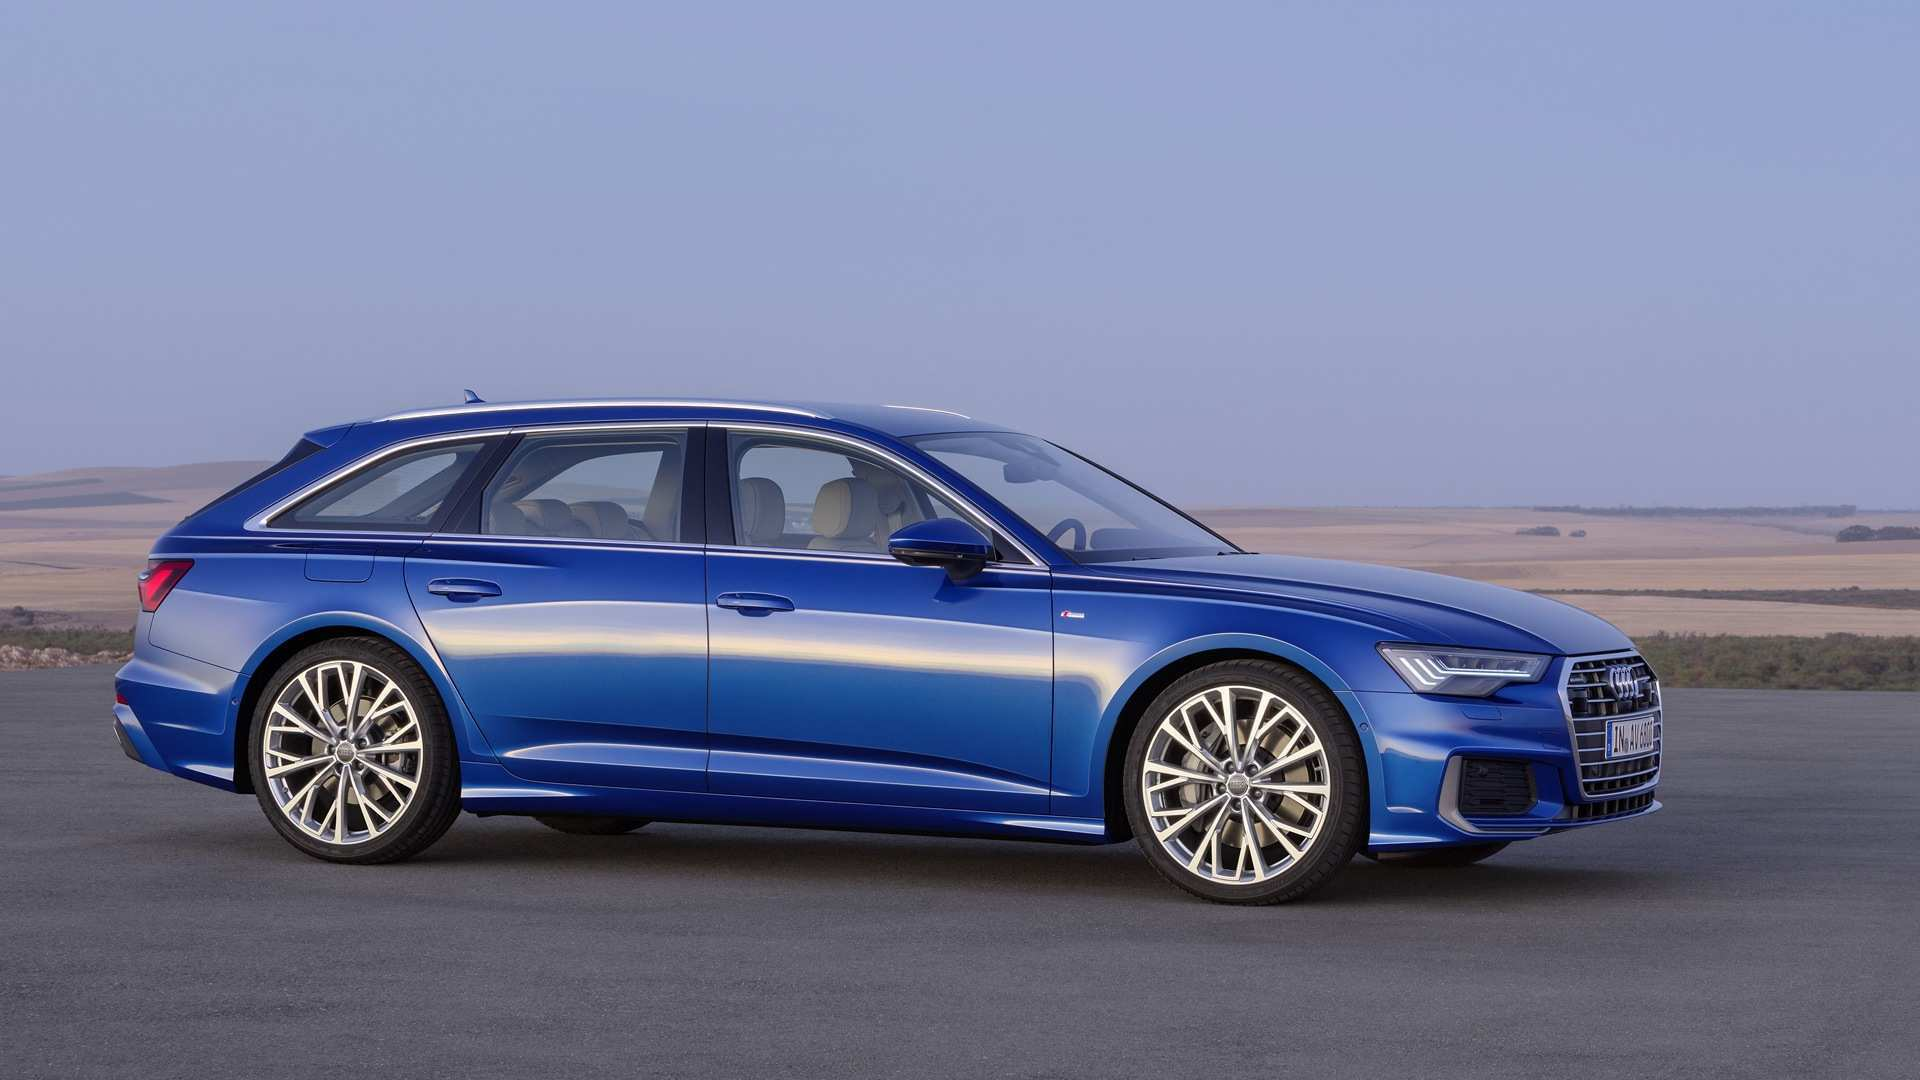 47 New 2019 Audi Wagon Usa Concept by 2019 Audi Wagon Usa